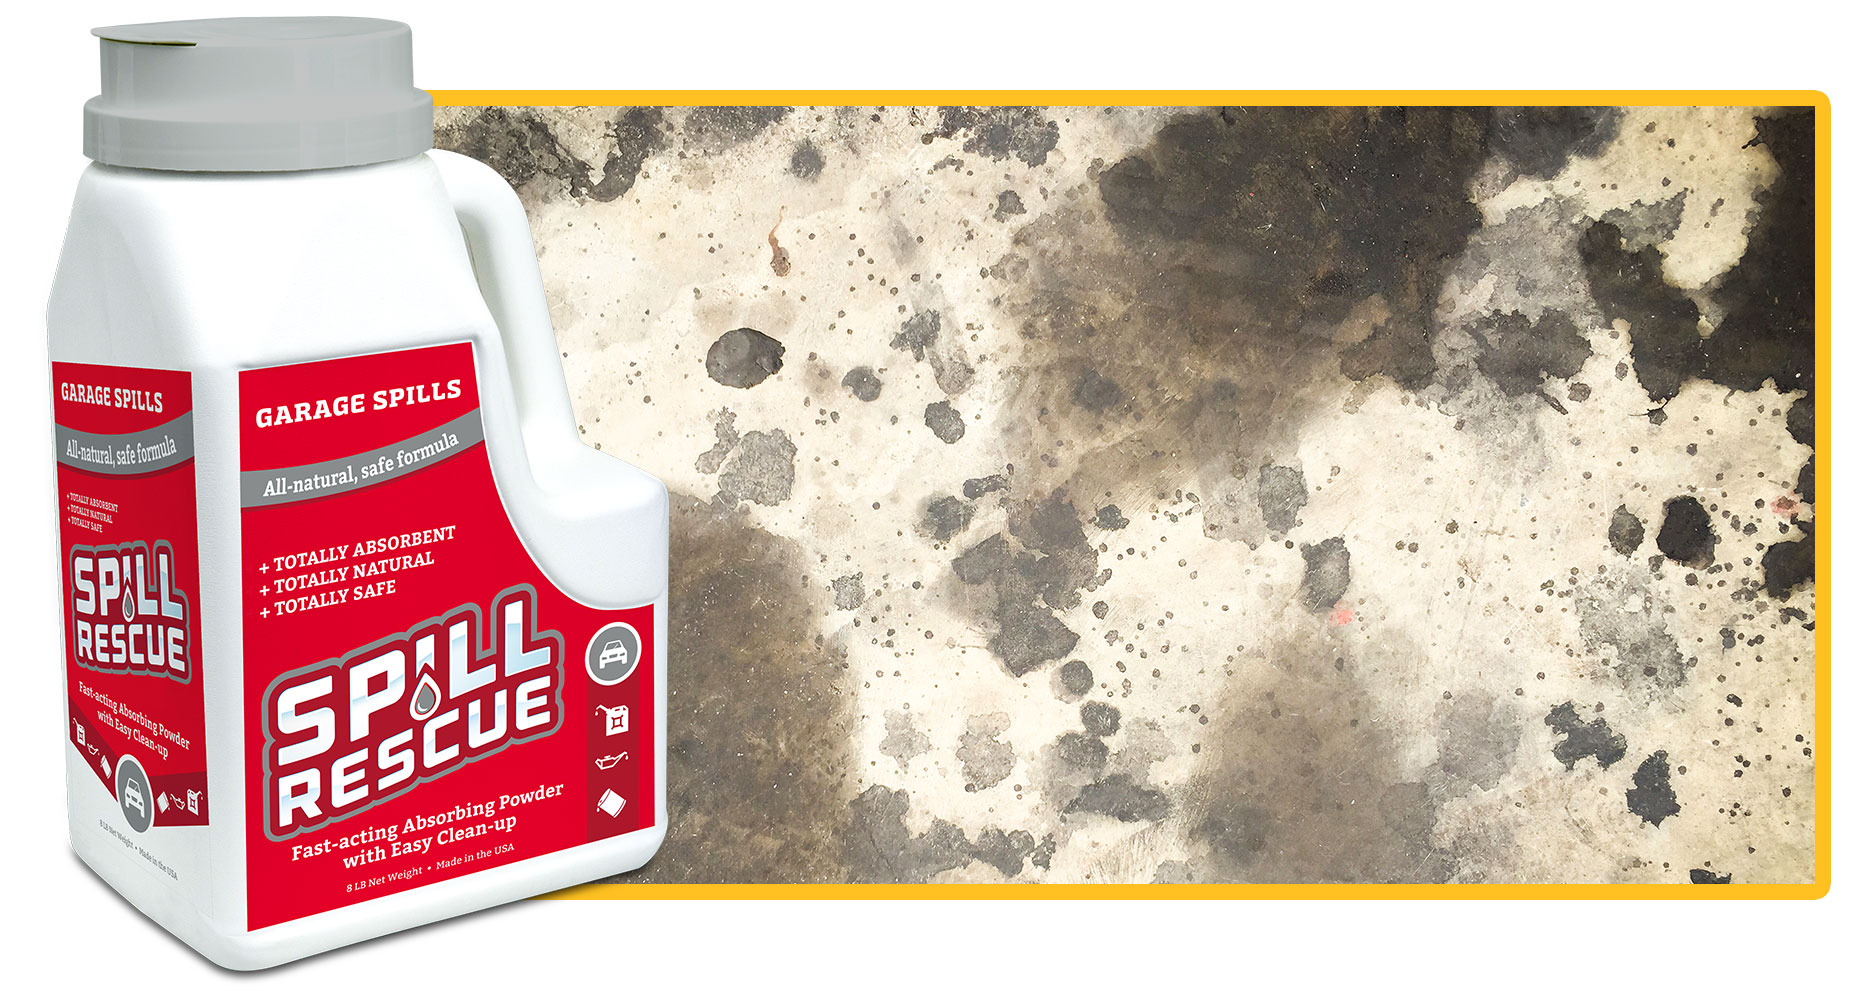 PureSky Products Spill Rescue for Garage Spills